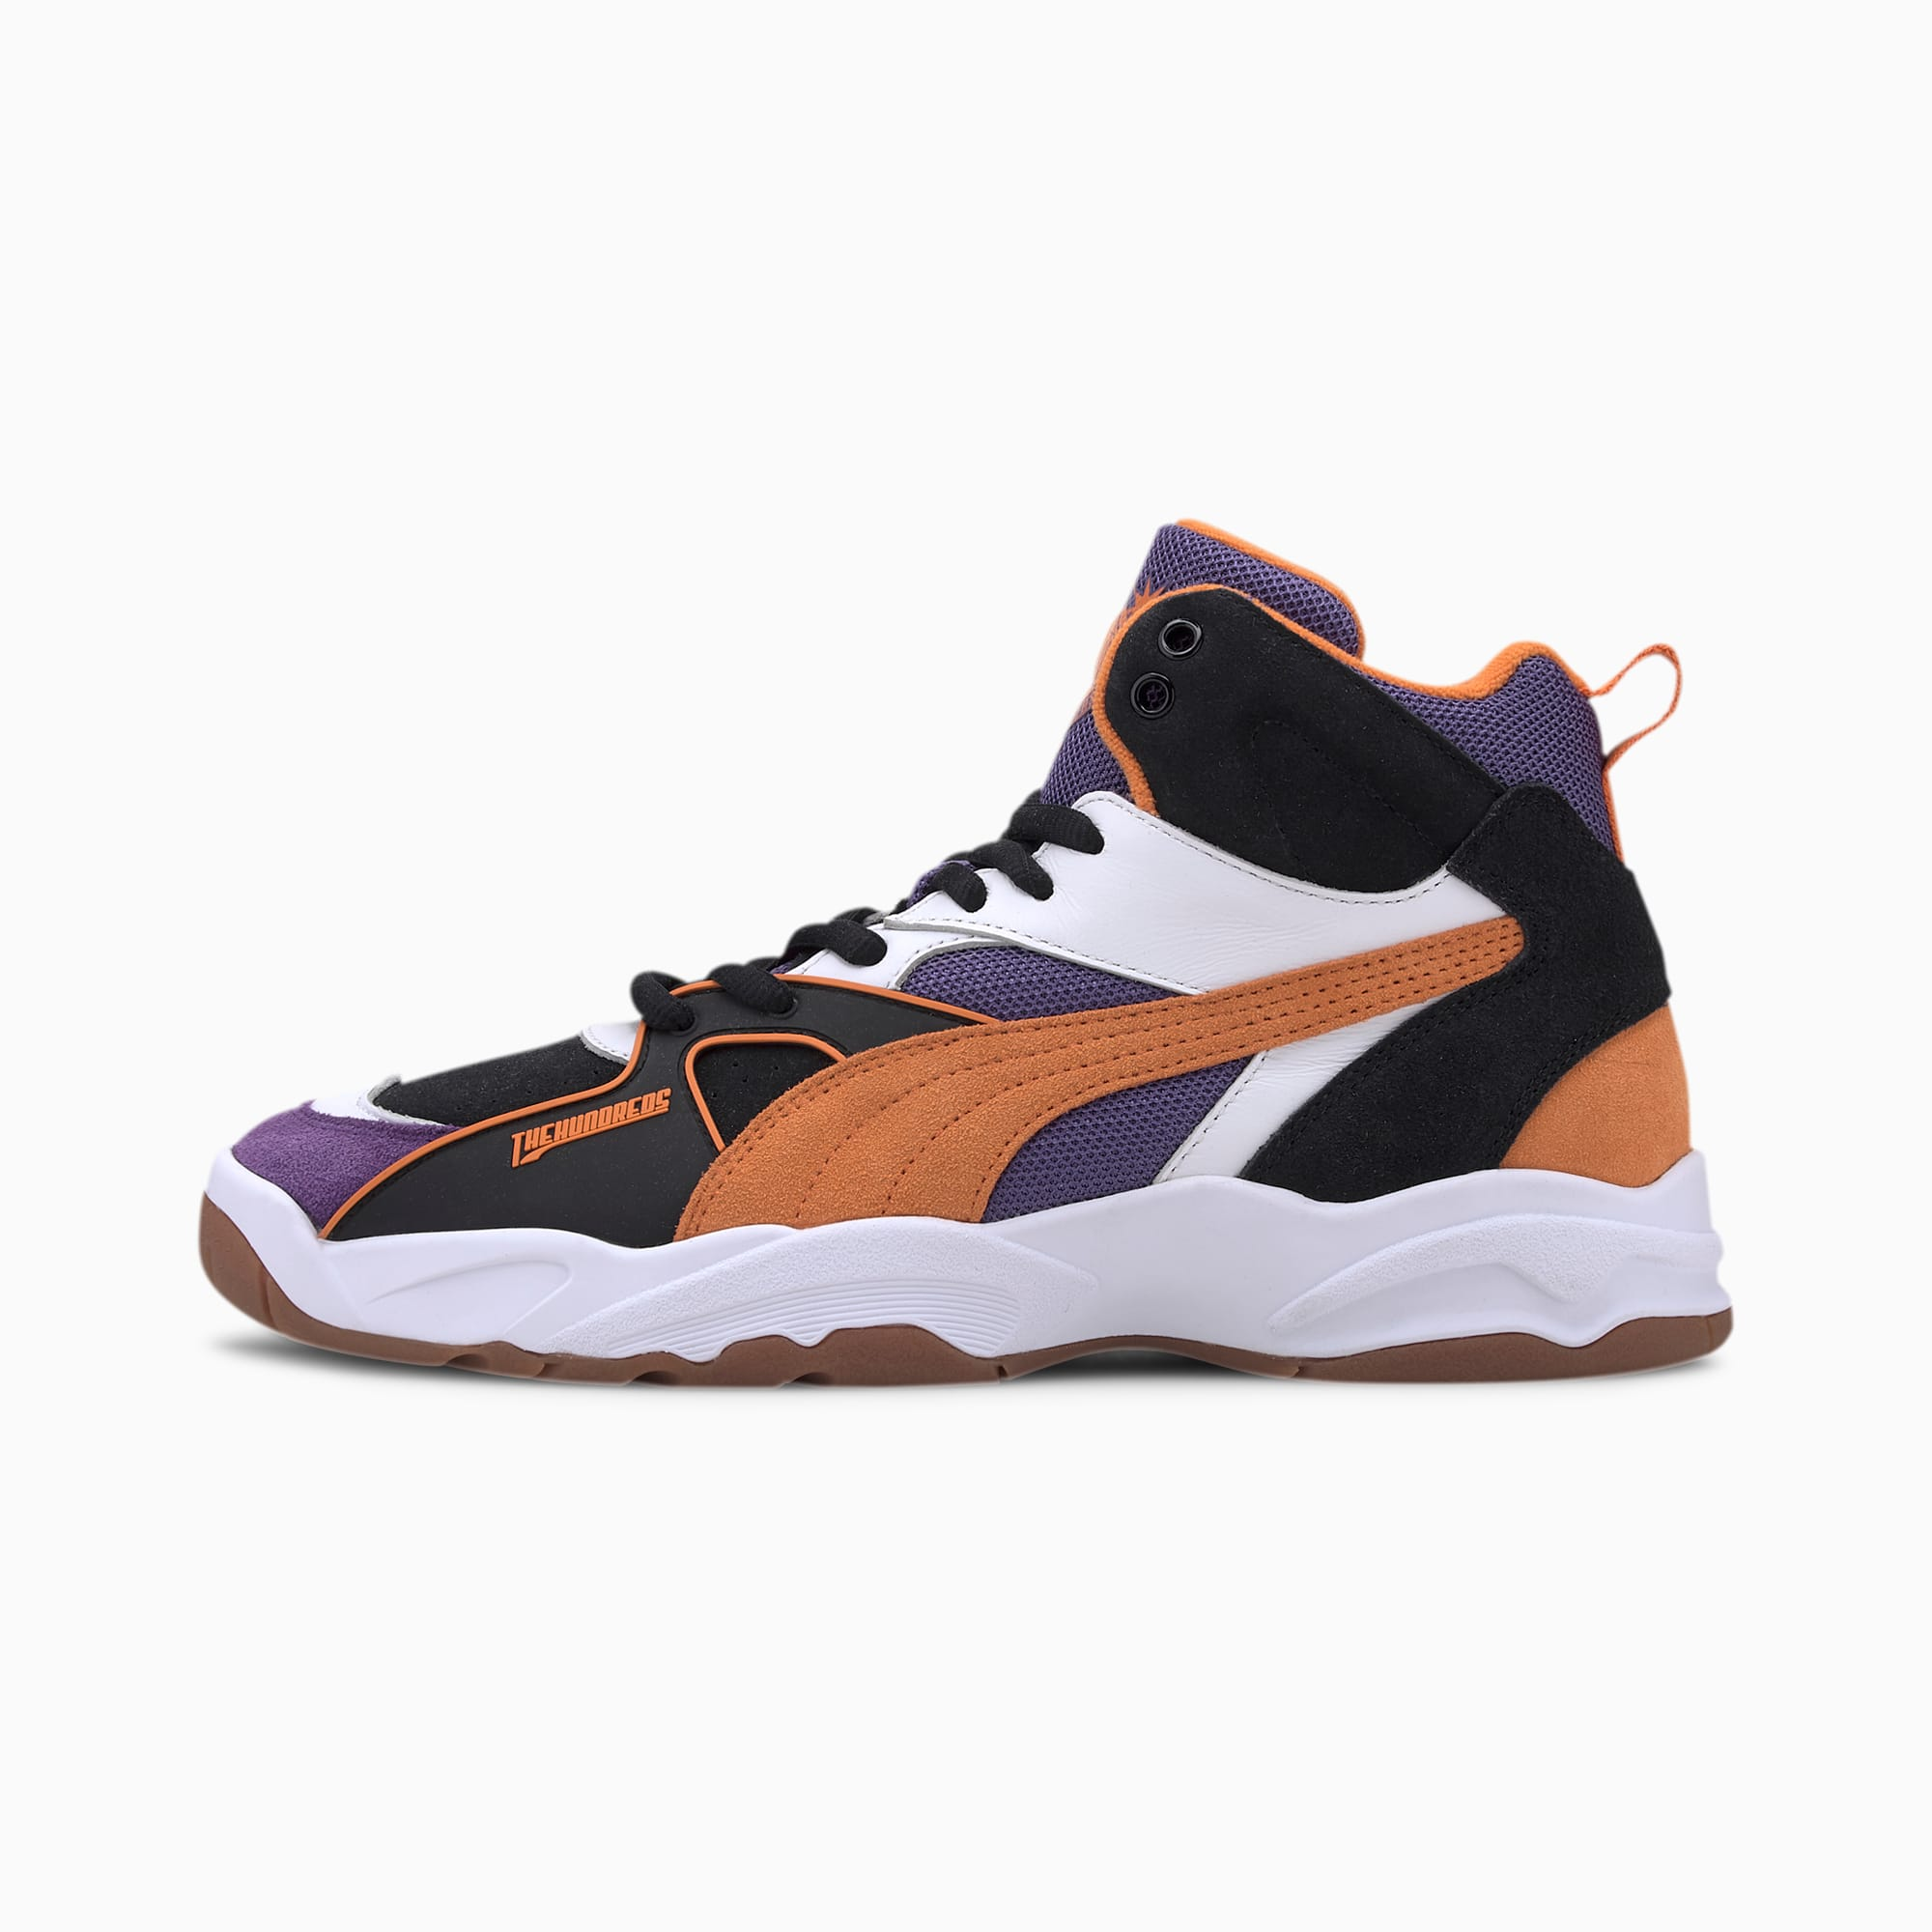 PUMA x THE HUNDREDS Performer Mid Men's Sneakers